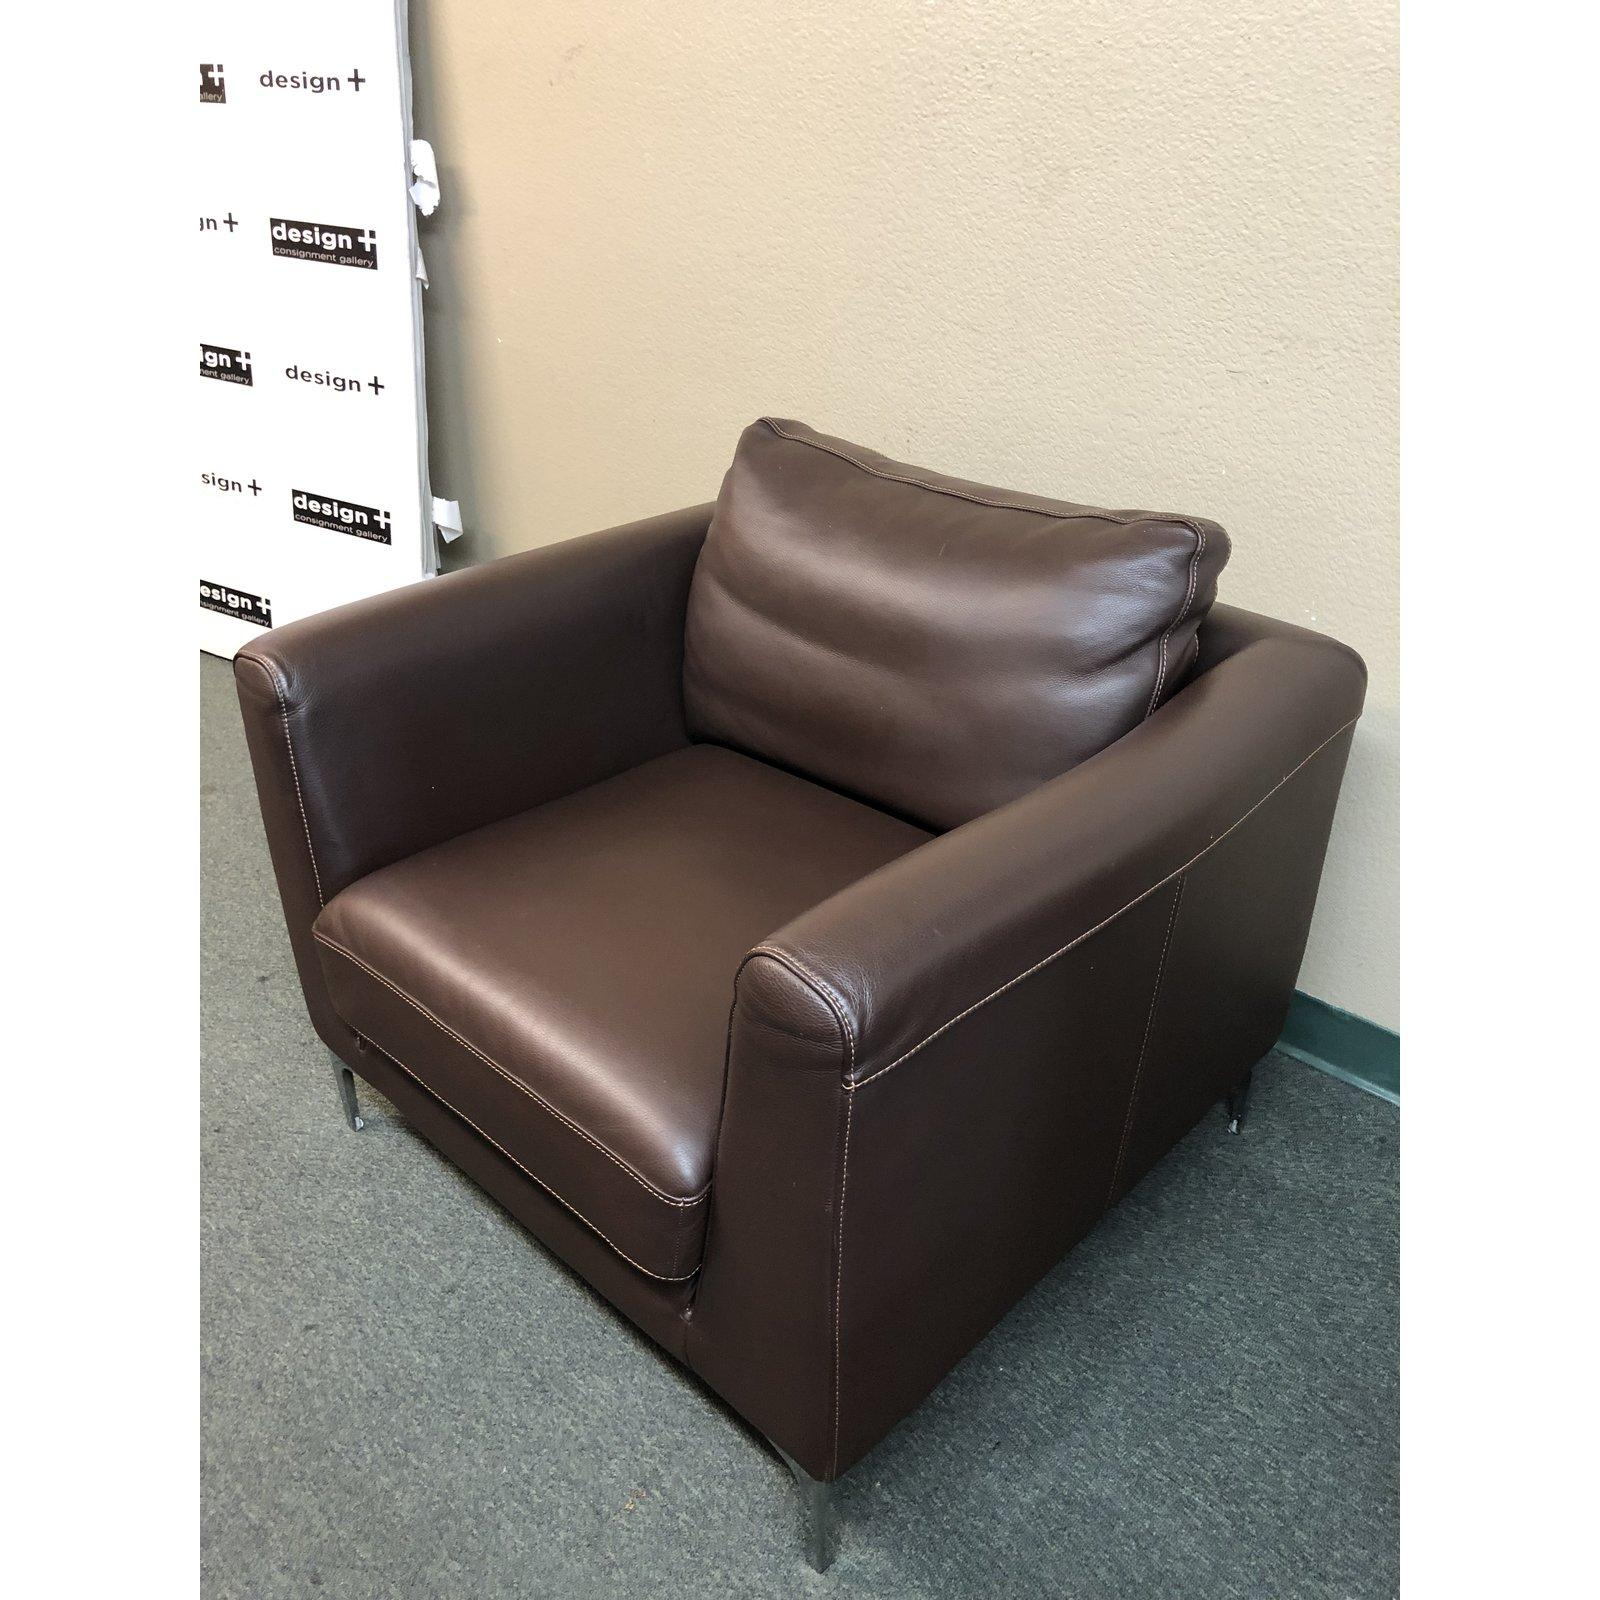 Remarkable Design Within Reach Nicoletti Brown Leather Armchair For Ncnpc Chair Design For Home Ncnpcorg